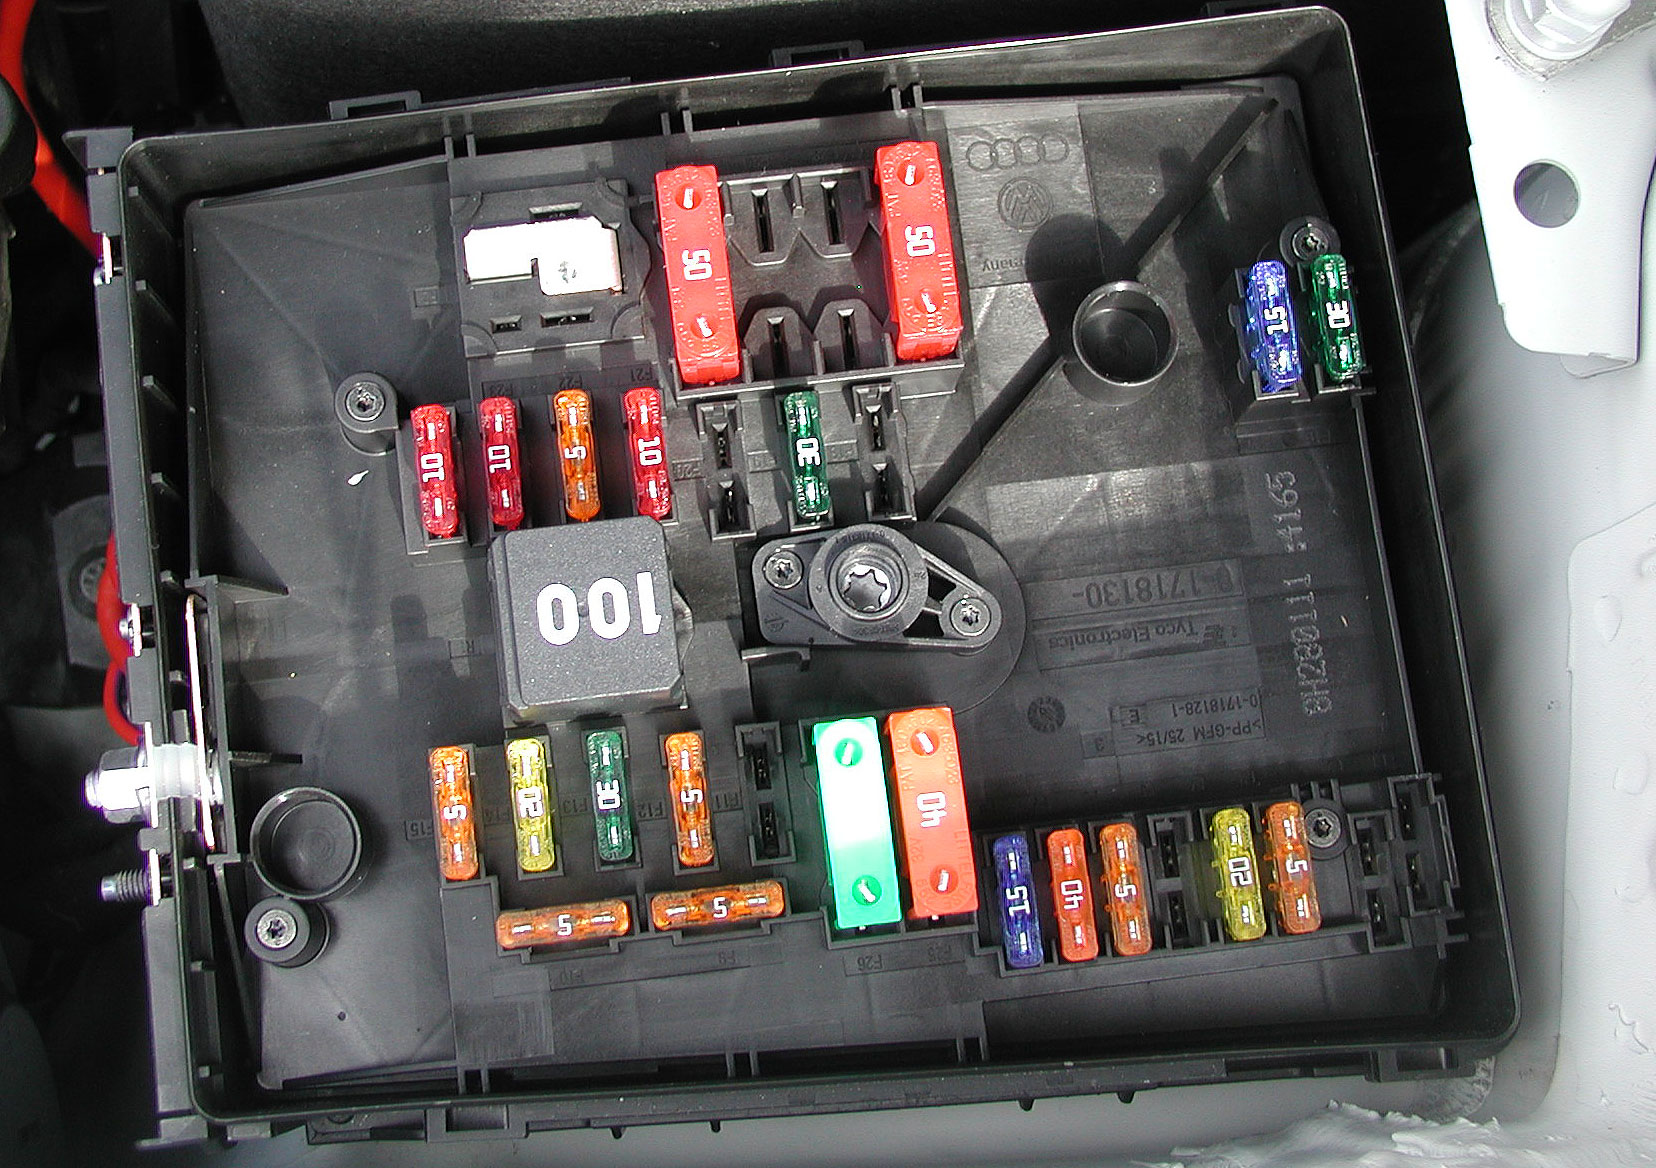 2011 Jetta Tdi Fuse Box Diagram Wiring Schematic 2003 Volkswagen Engine Golf Picture Please Tdiclub Forums Rh Com